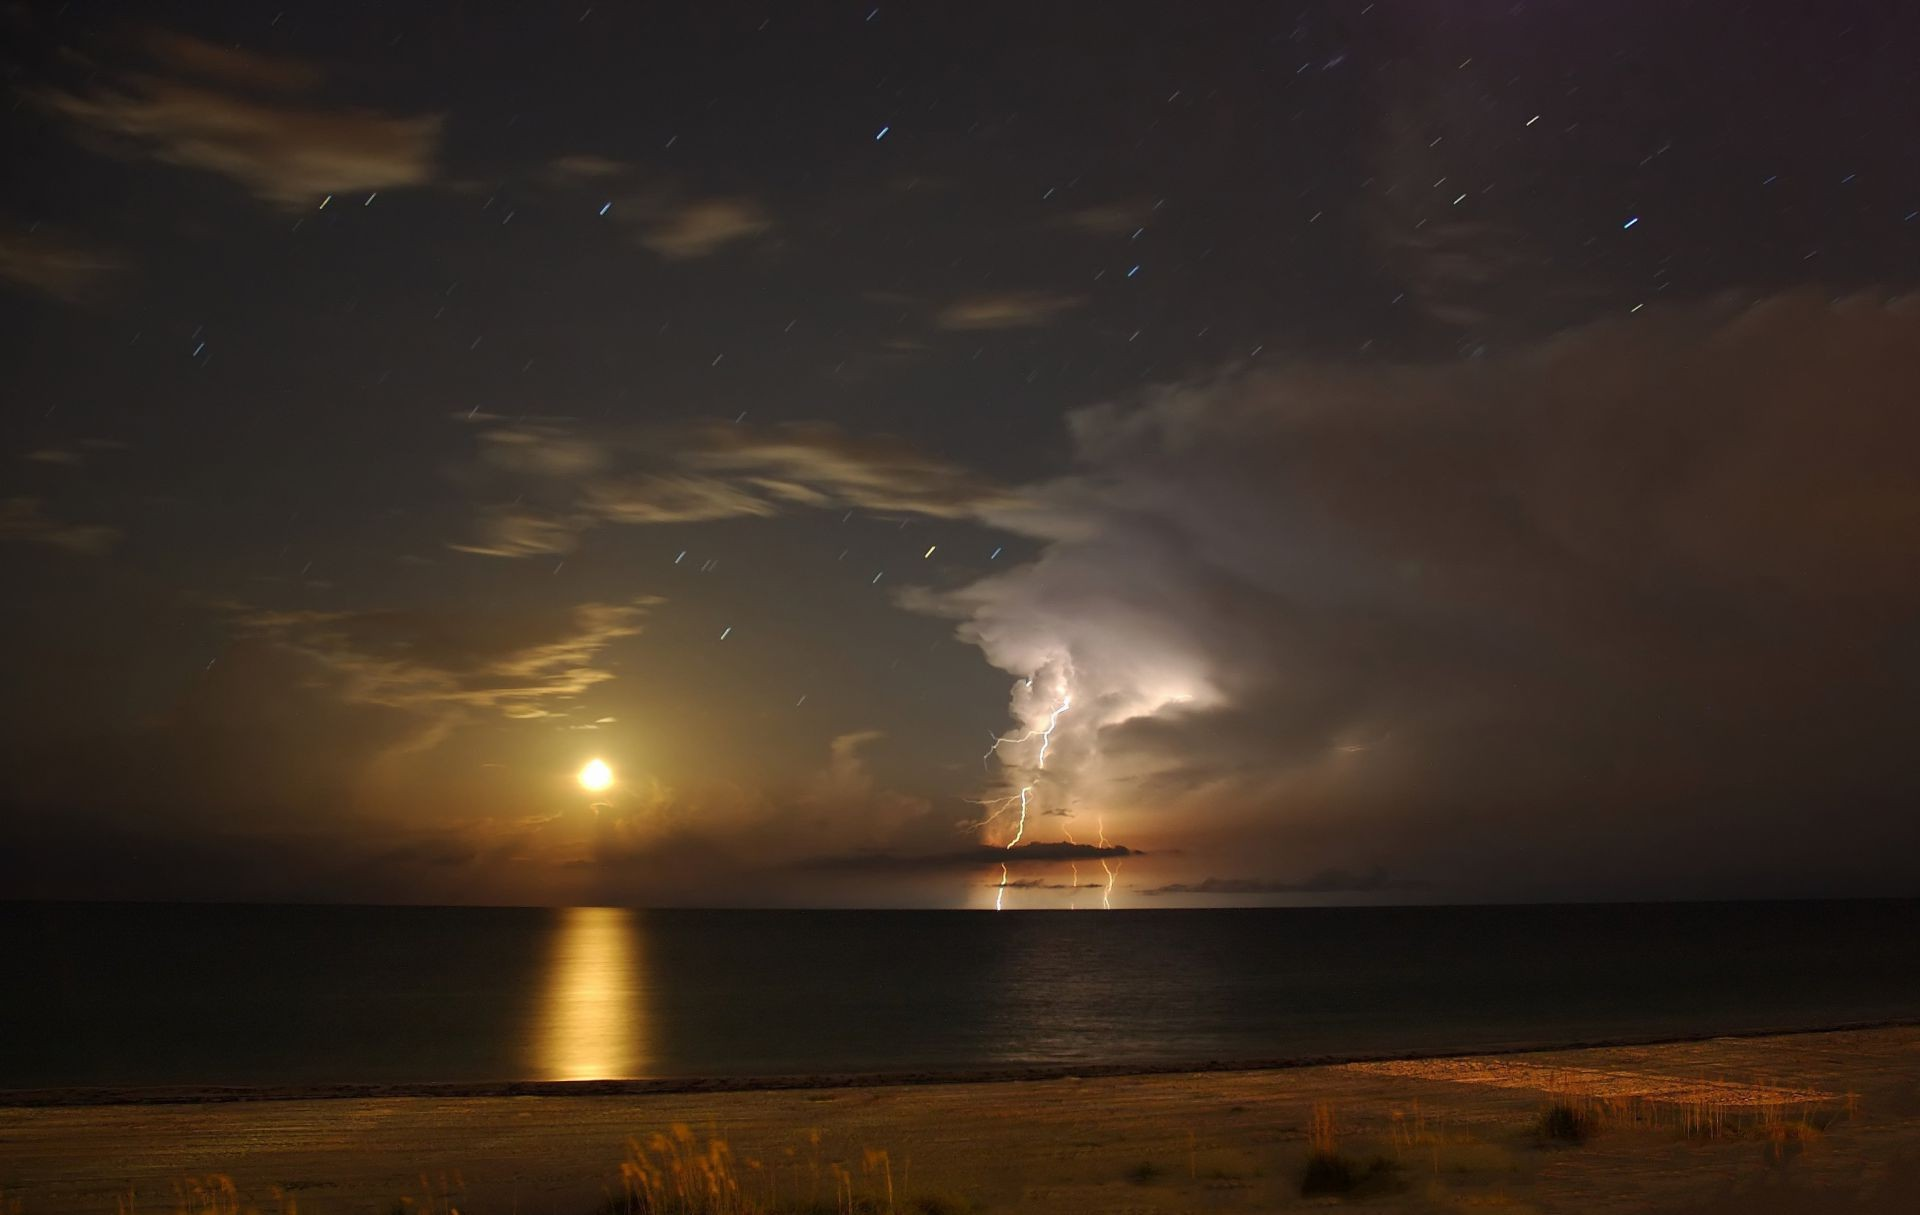 Beach In Storm Lightning: Stars Lightning Sea. Android Wallpapers For Free